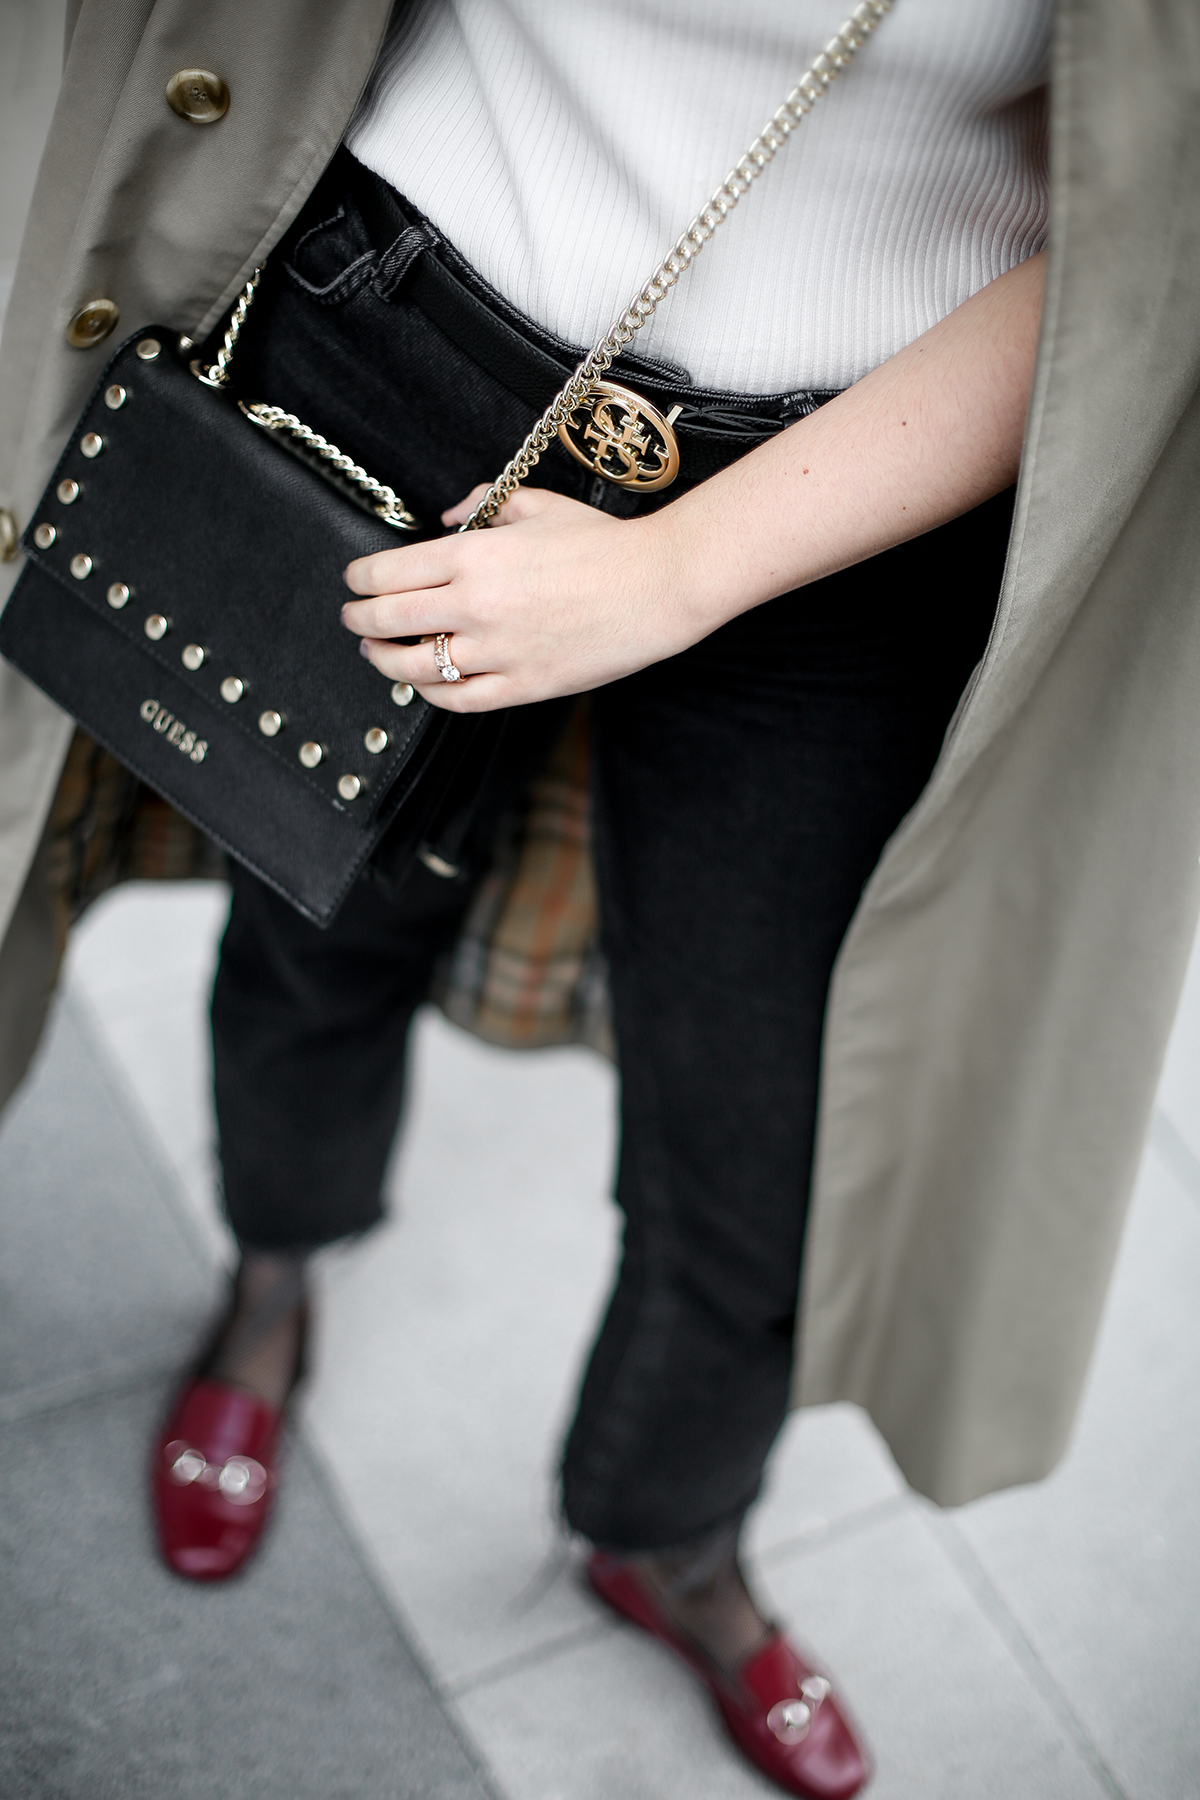 jersey-canale-frayed-jeans-gucci-loafers-guess-accesories-myblueberrynightsblog4